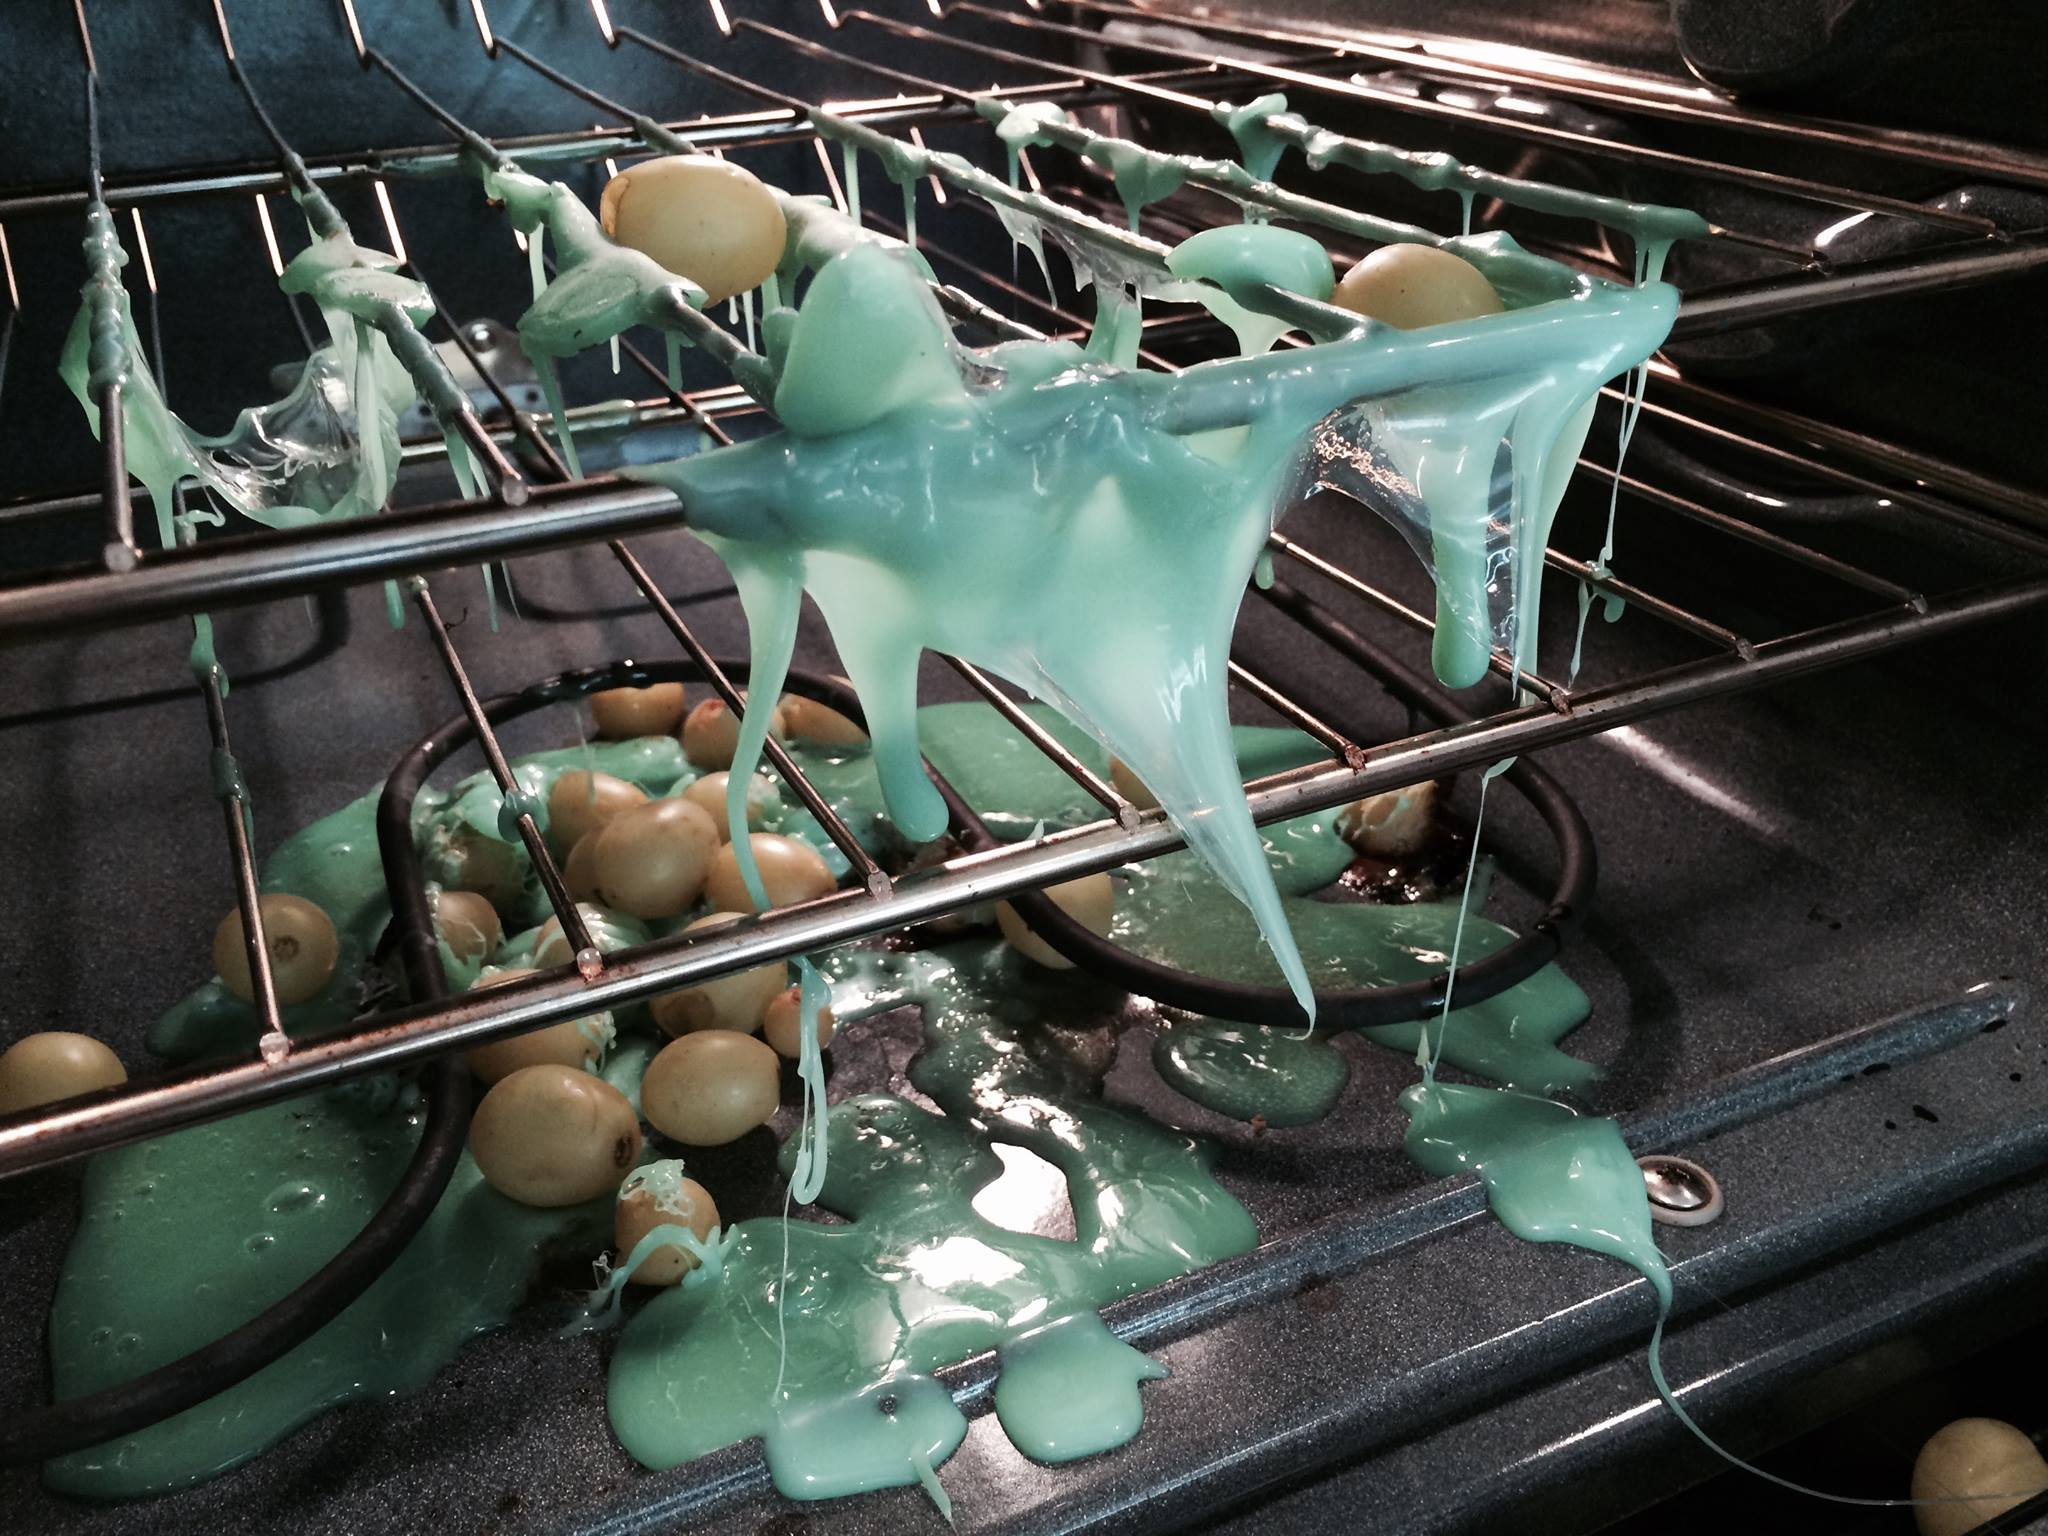 Kitchen Disaster Contest | Mindful Palate